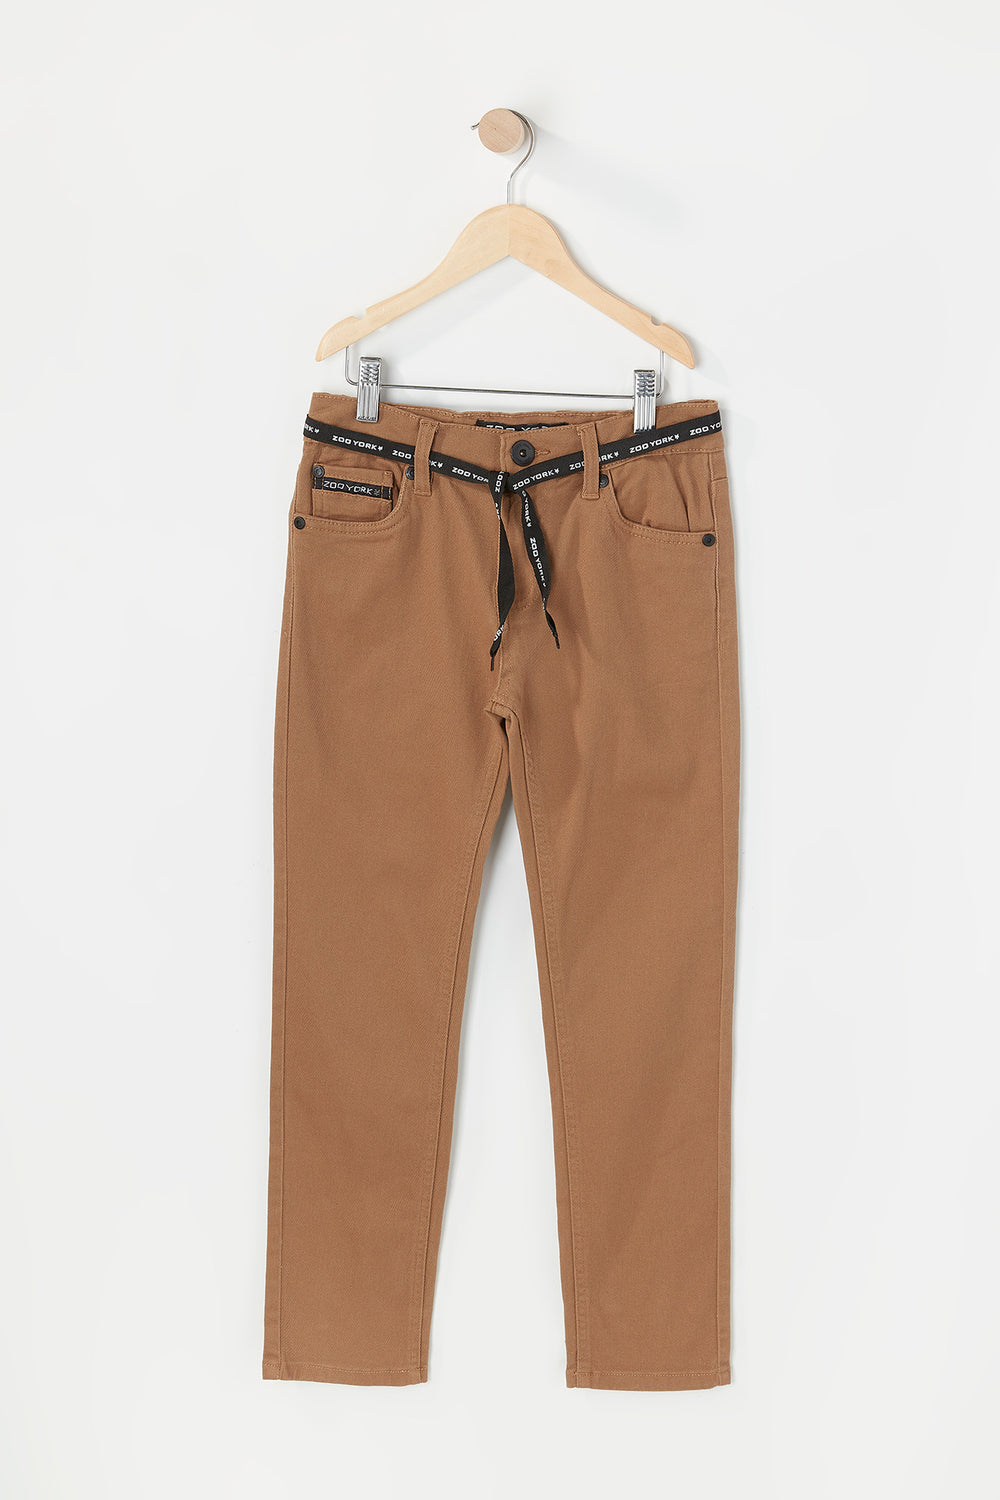 Zoo York Youth Skinny Jeans Camel